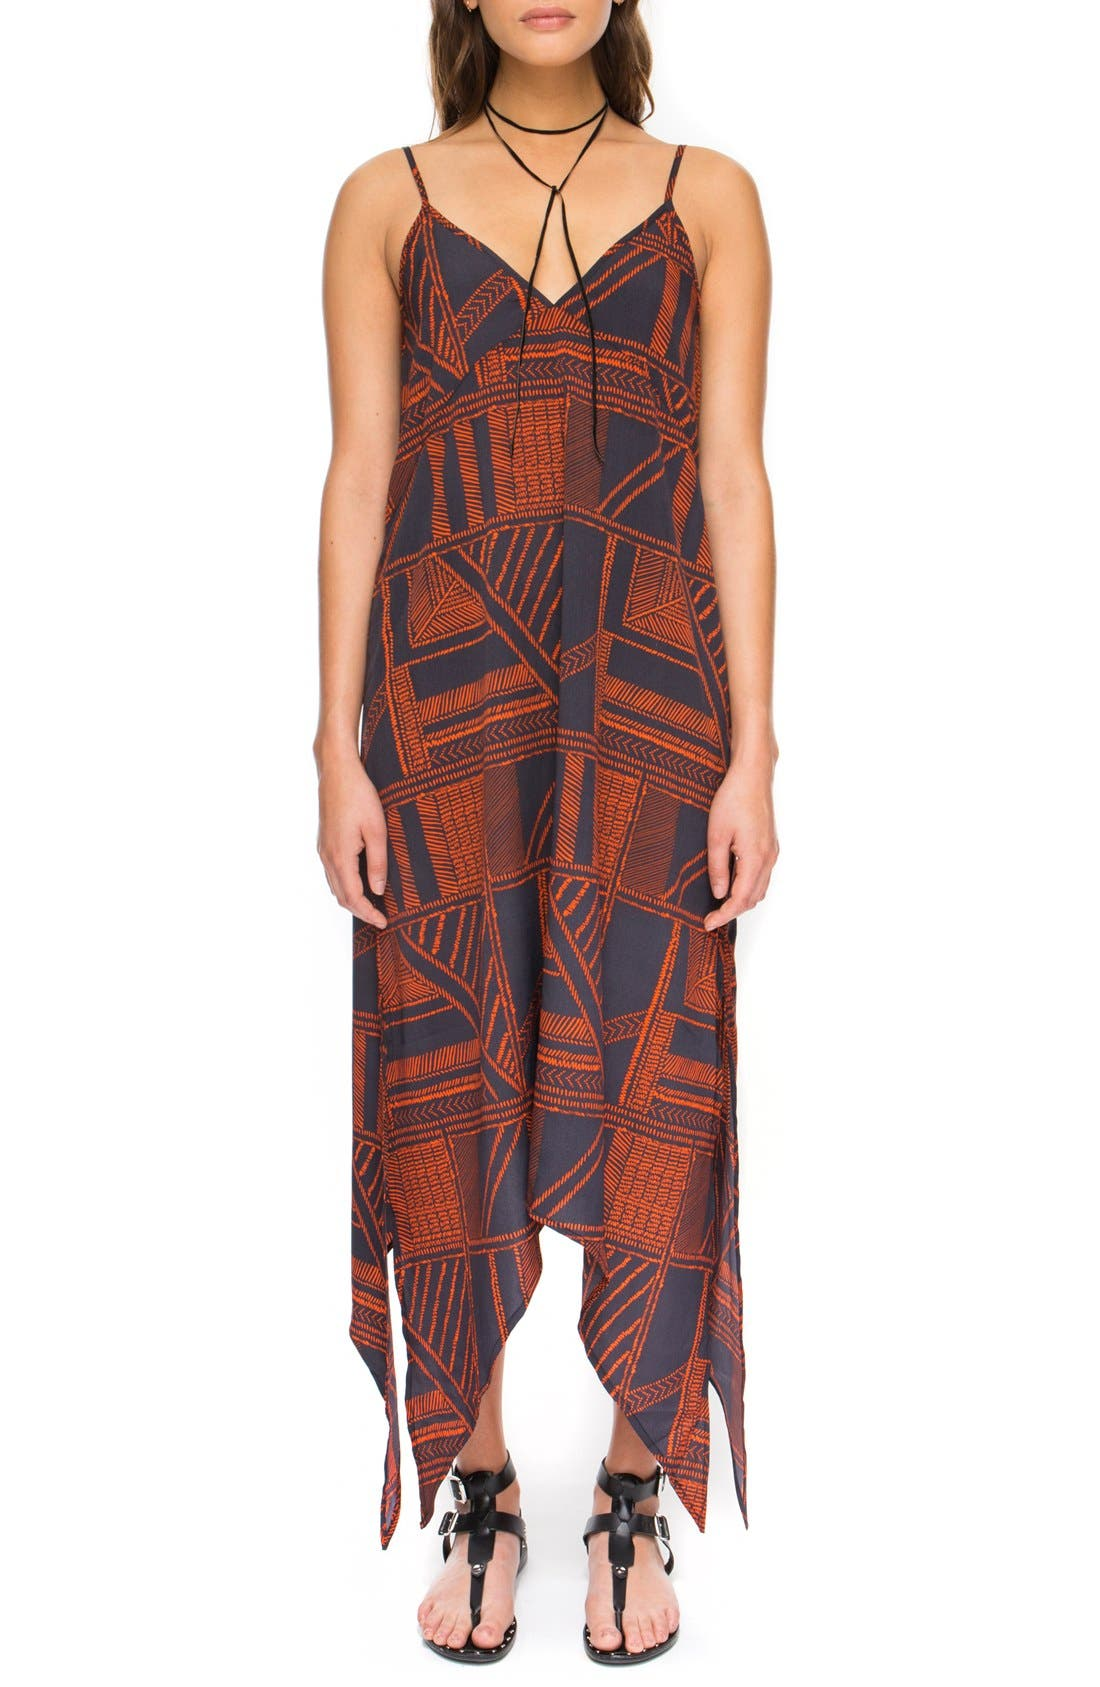 Alternate Image 1 Selected - The Fifth Label 'Lost Paradise' Print Maxi Dress